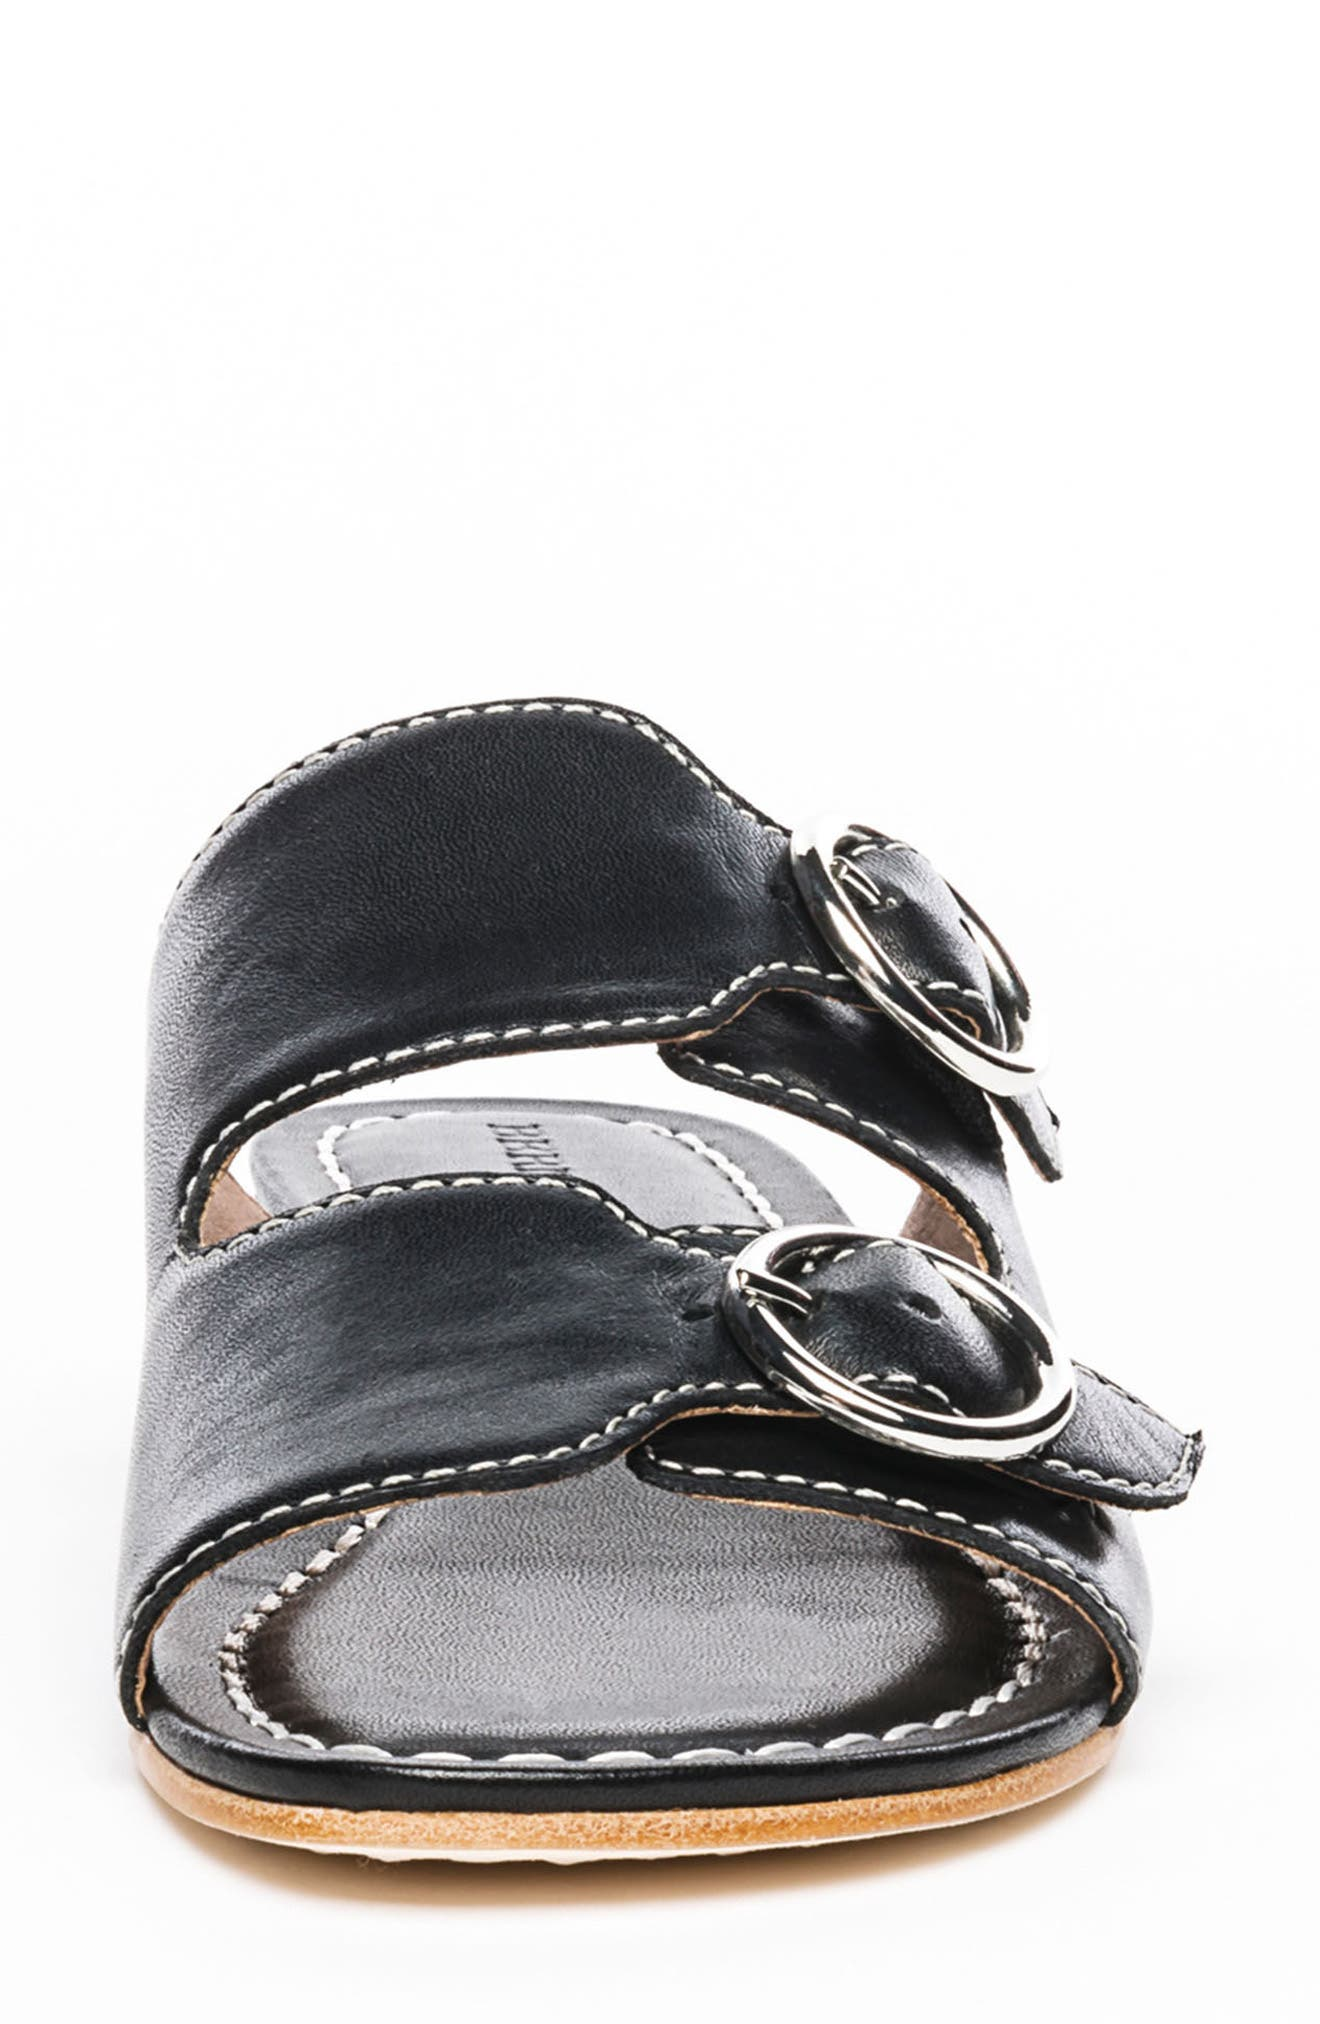 Bernardo Tobi Slide Sandal,                             Alternate thumbnail 4, color,                             001